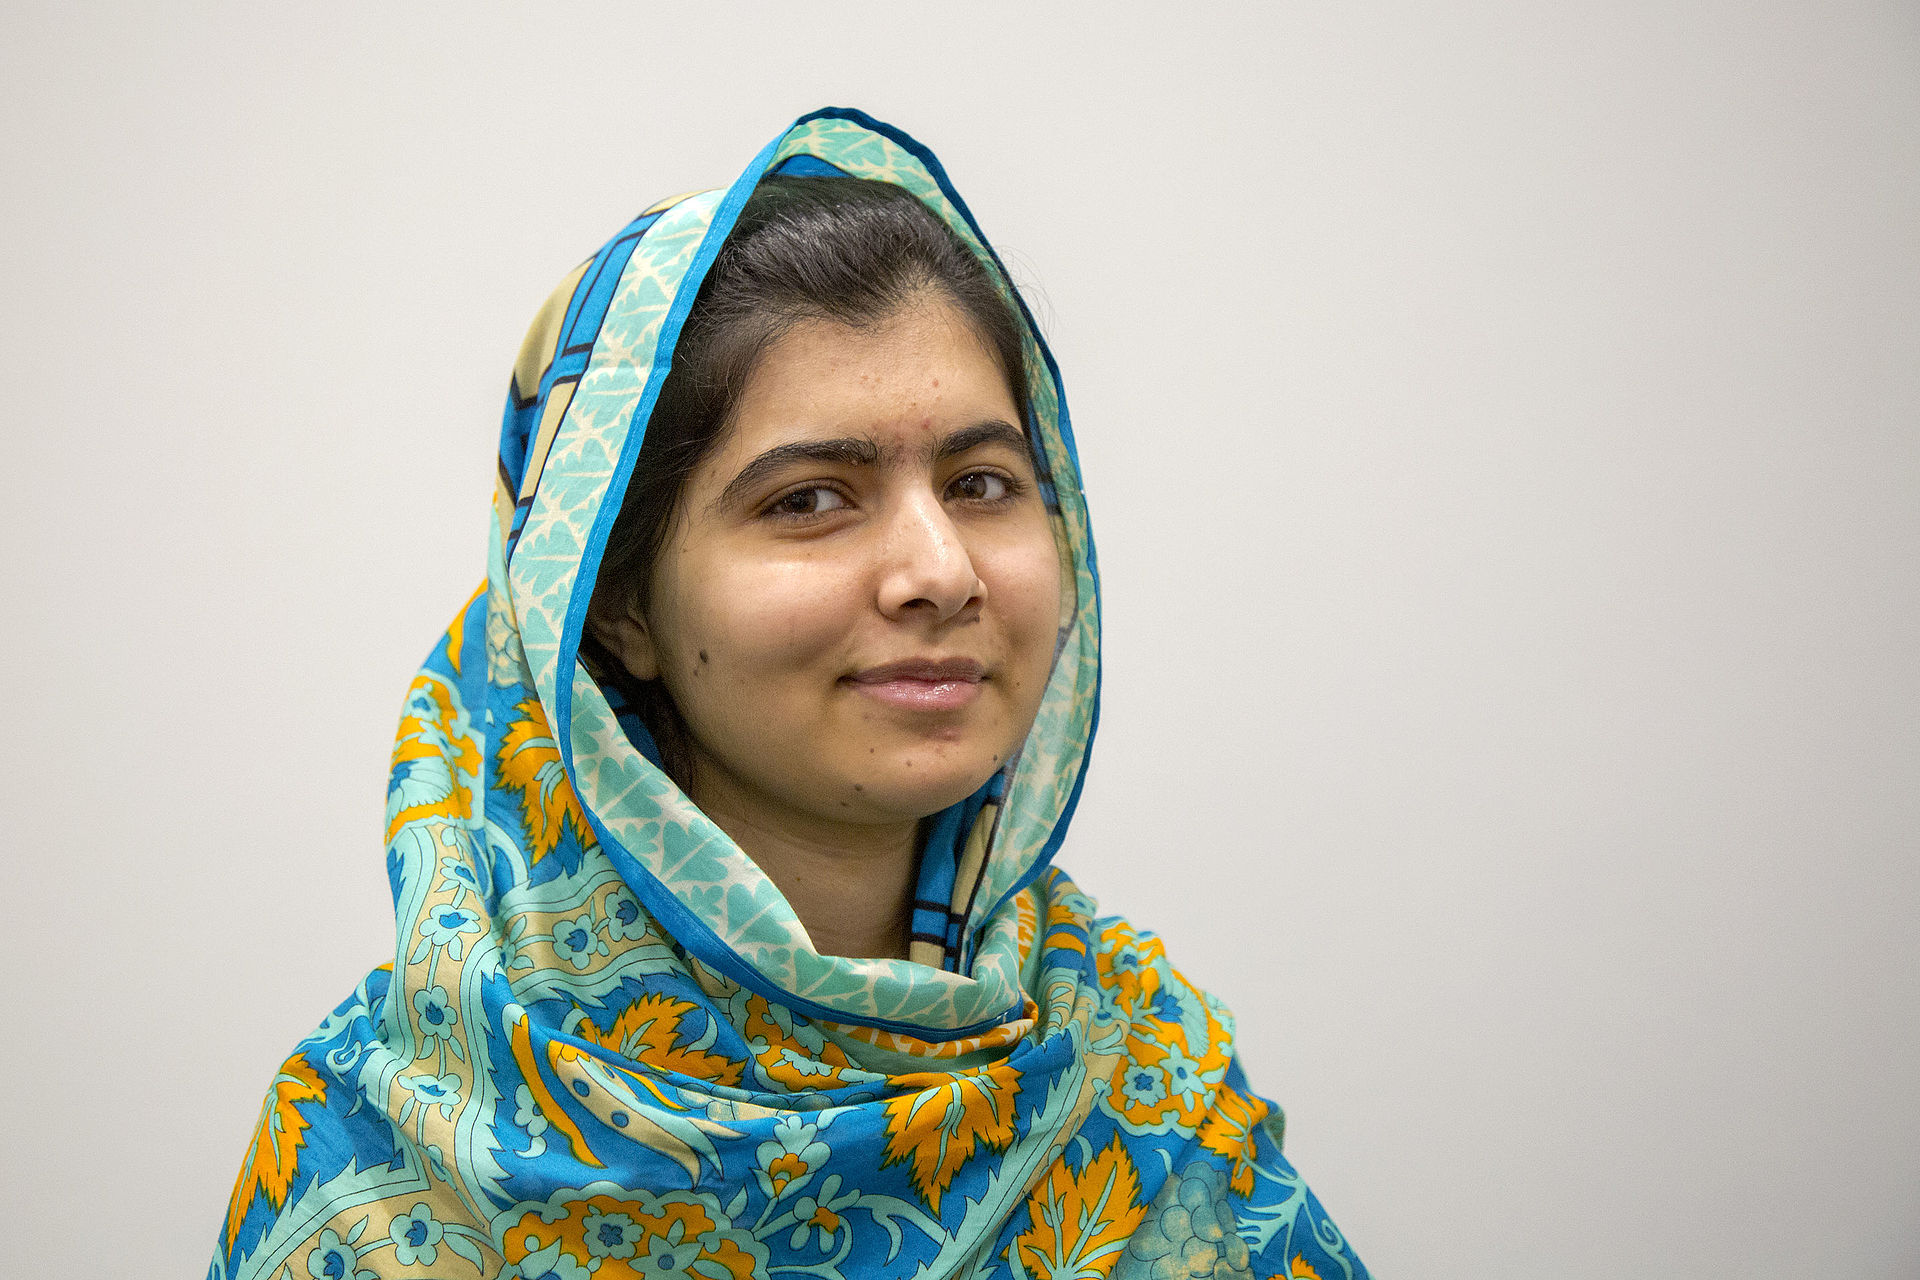 Malala Yousafzai Education for girls 22419395331